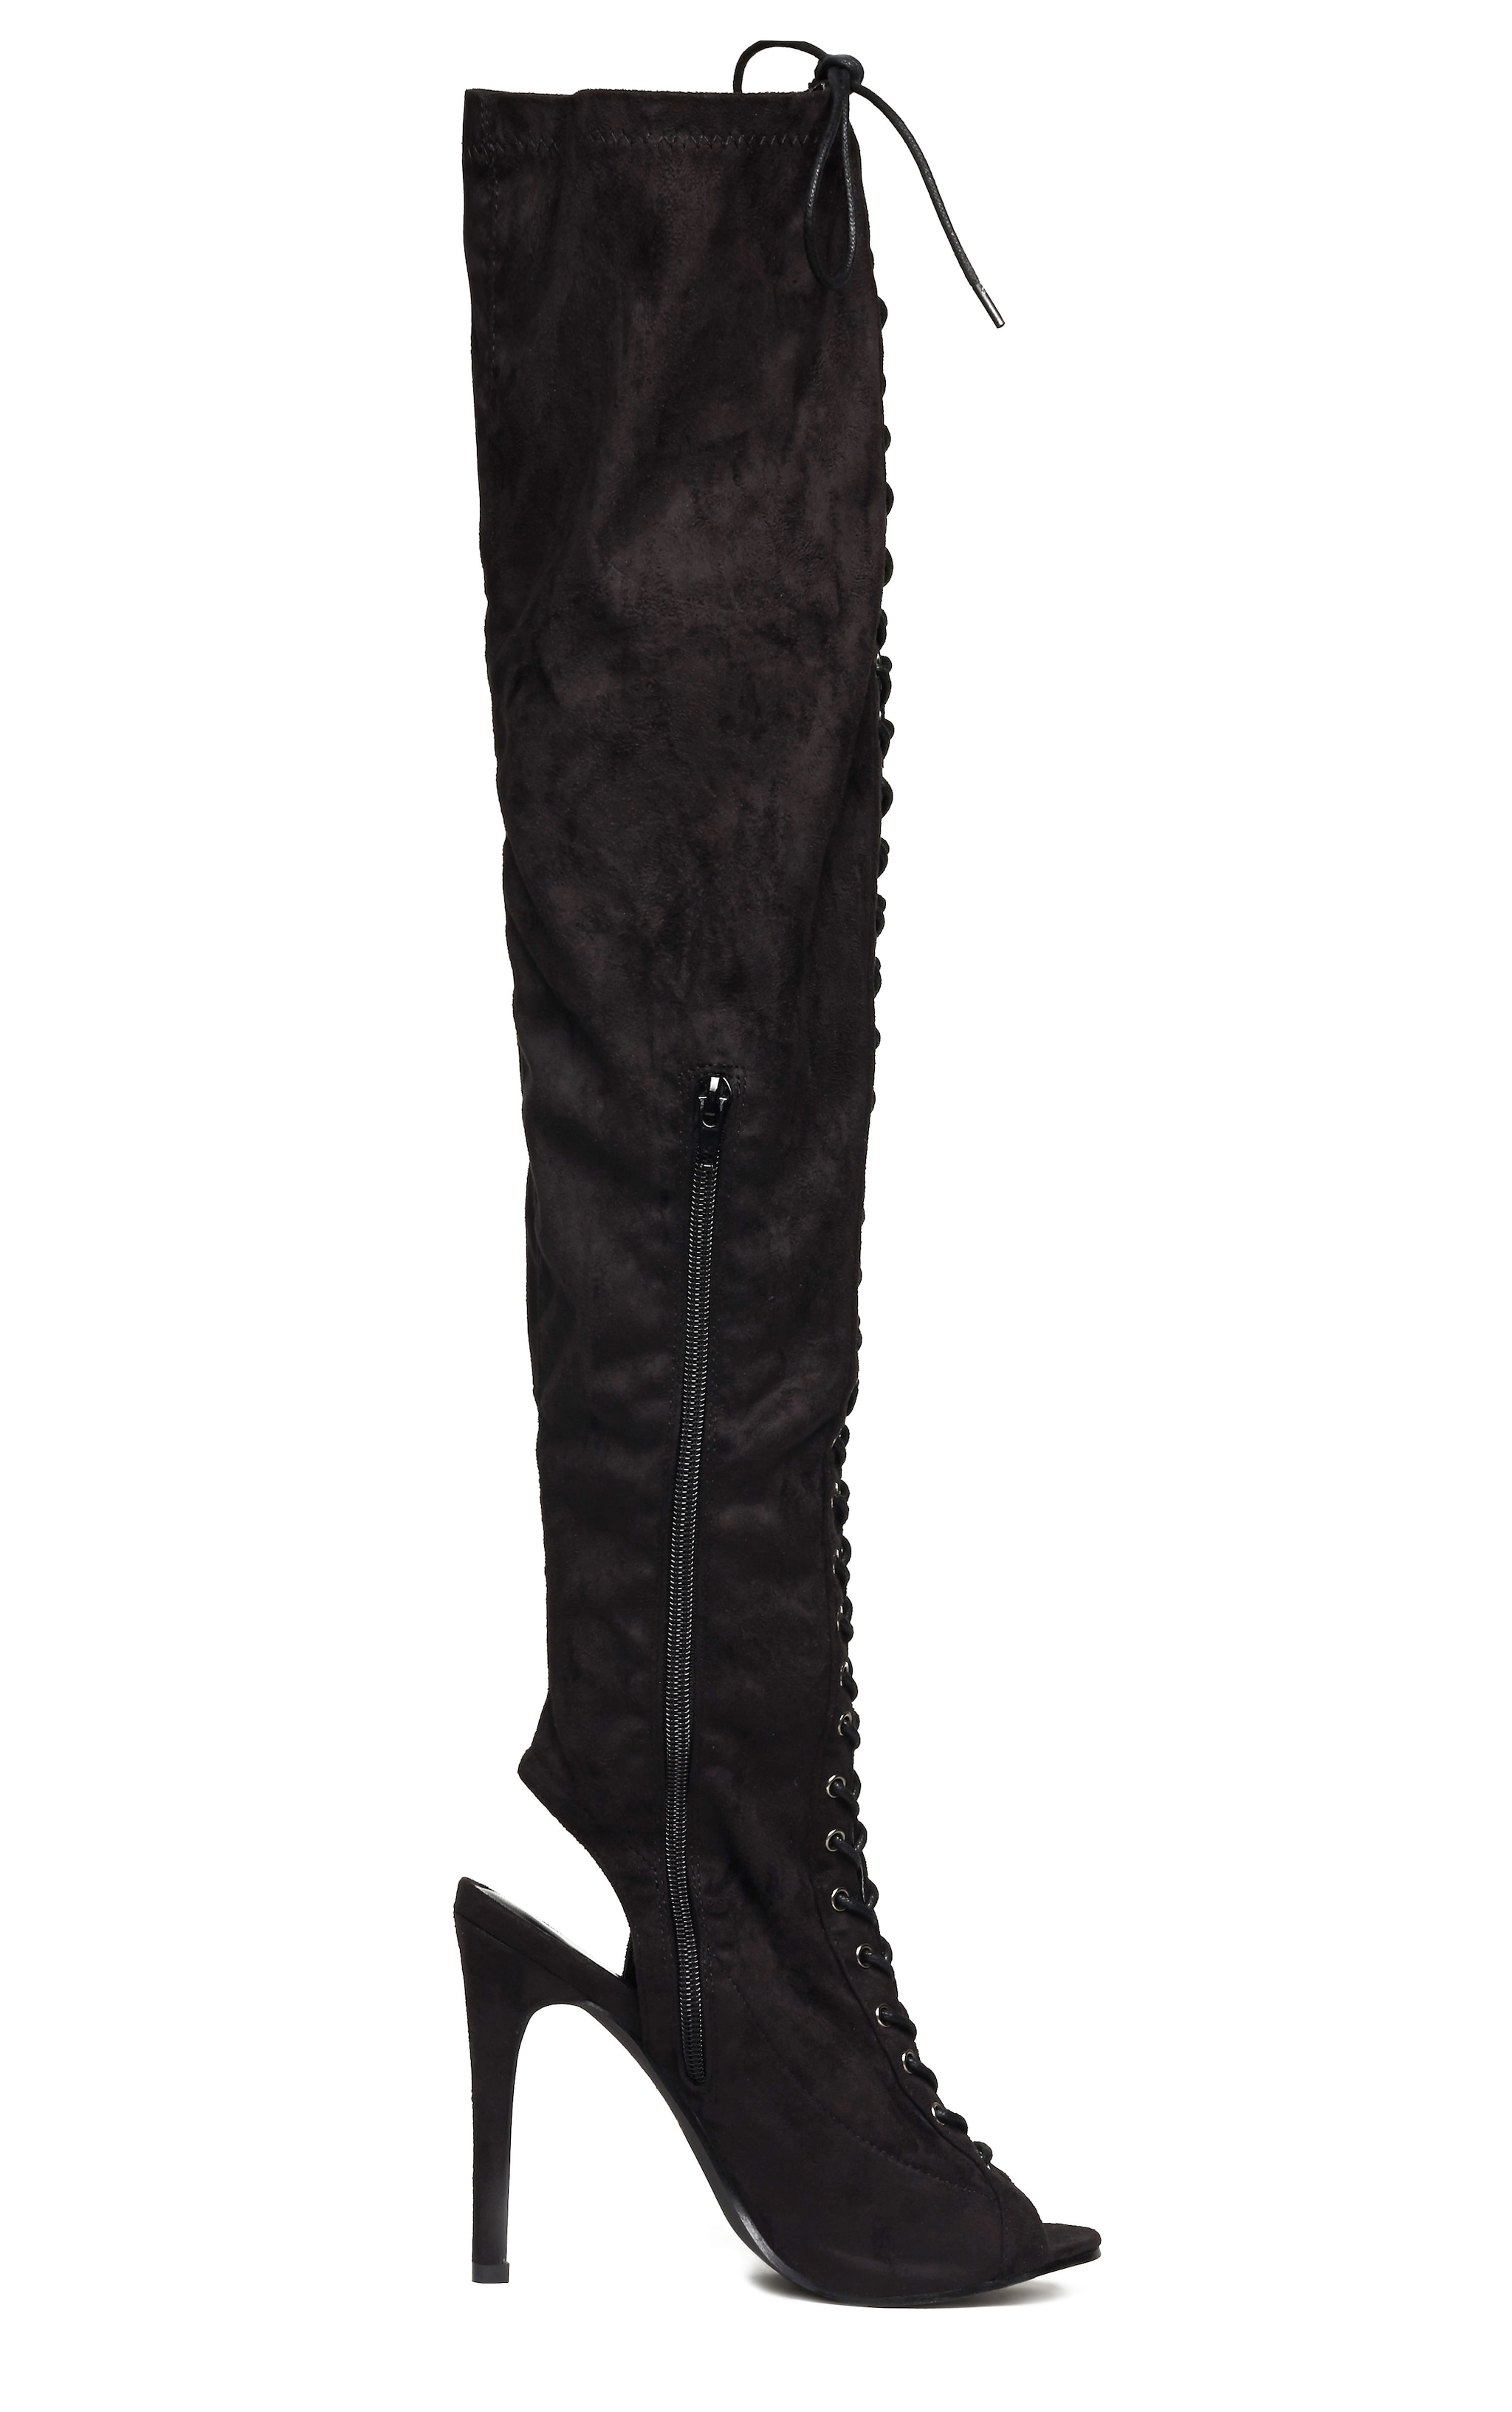 Valentina Black Suede Lace Up Thigh Boots 5